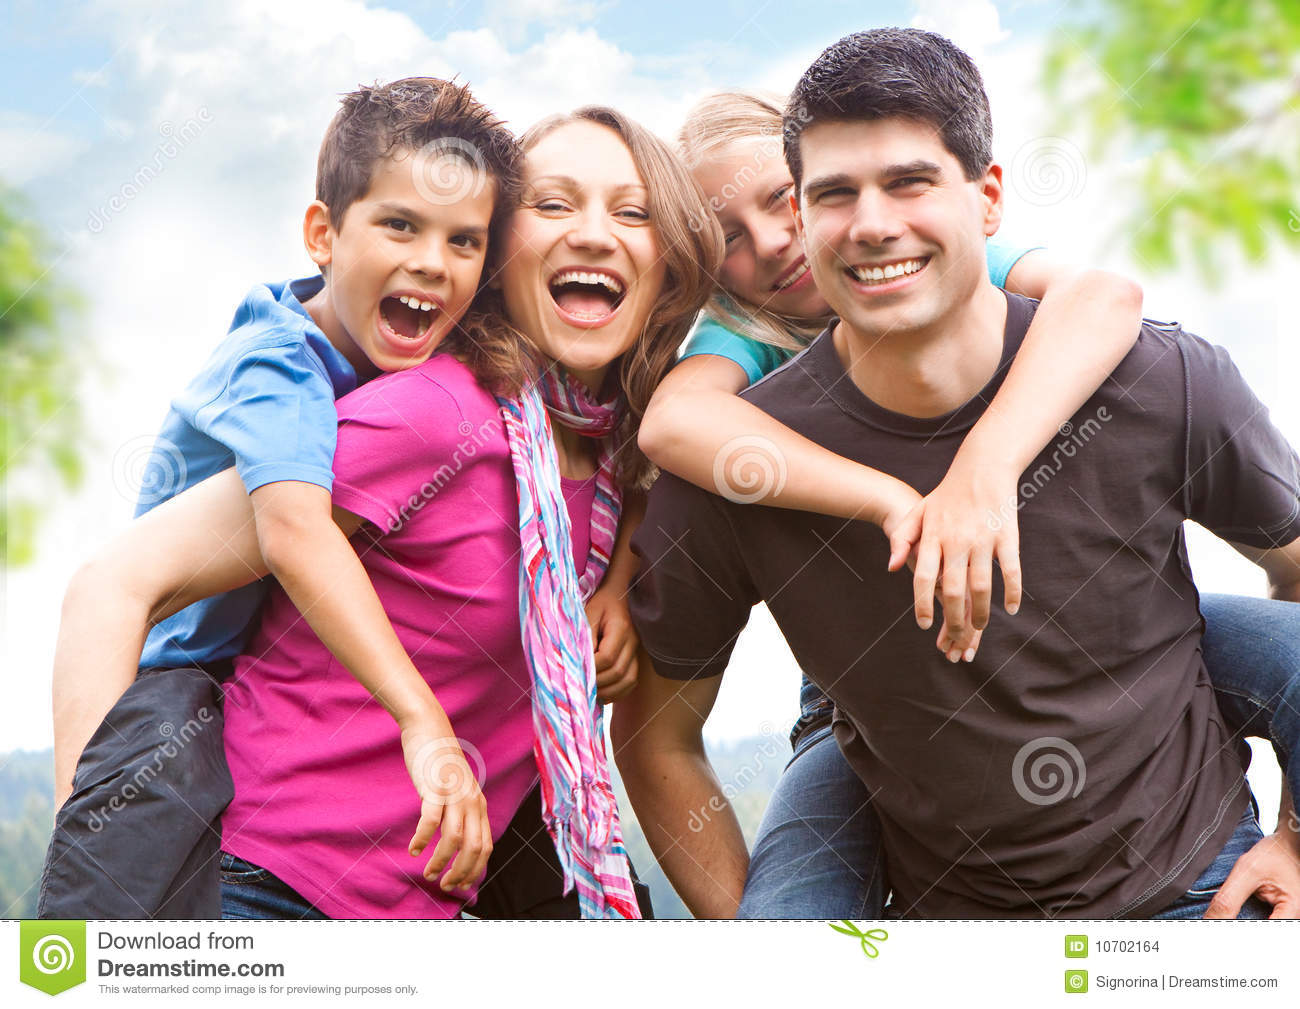 Family-fun 7 Stock Images - Image: 10702164